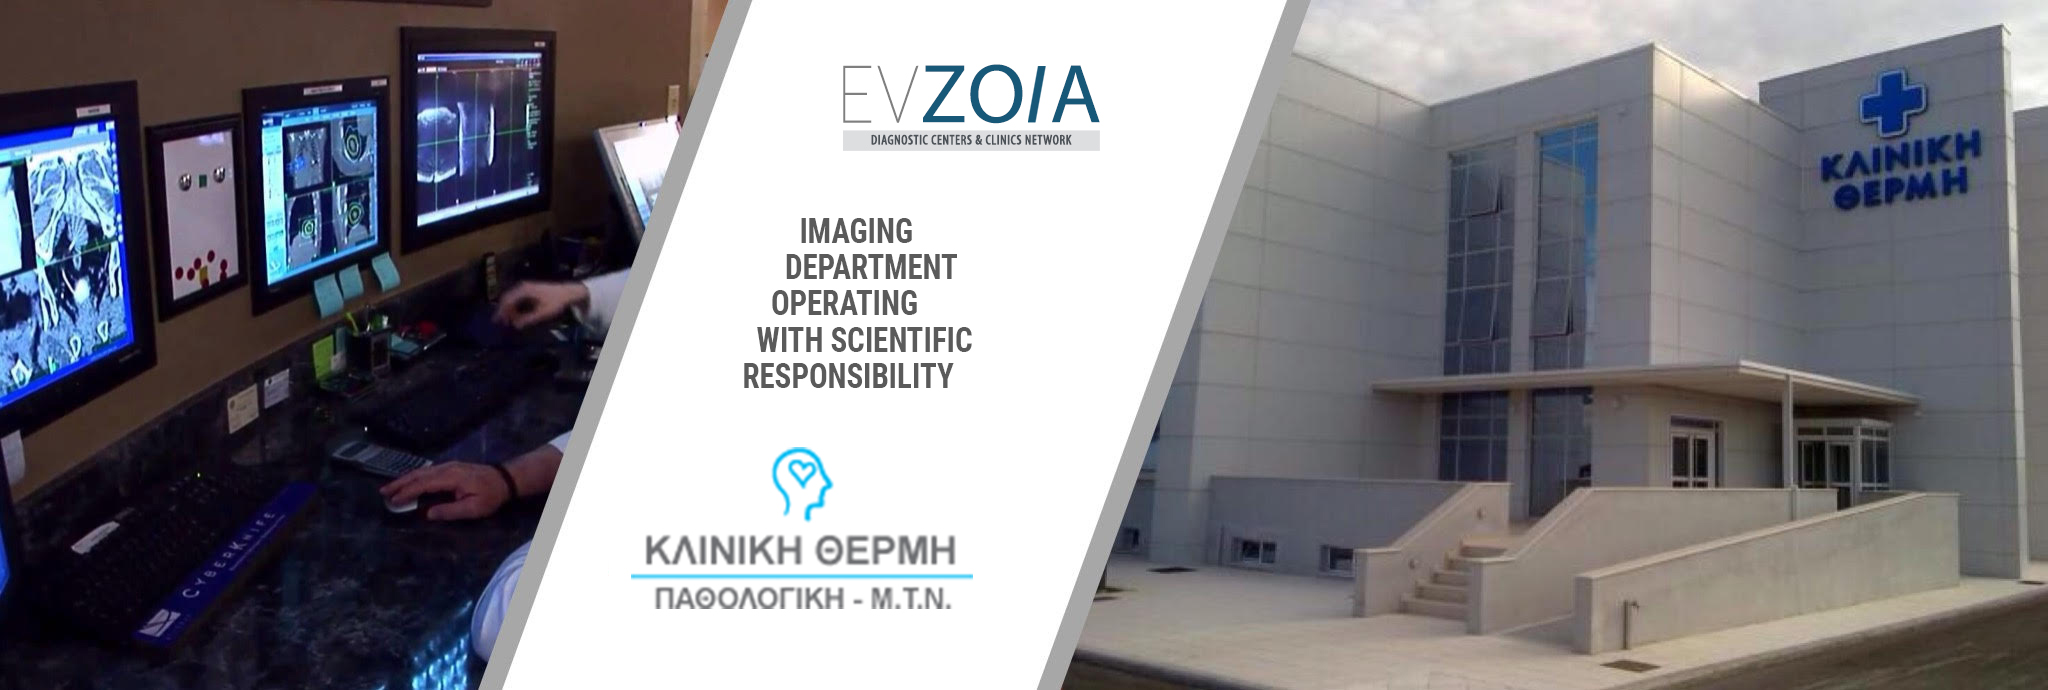 Evzoia - Model Imaging Center